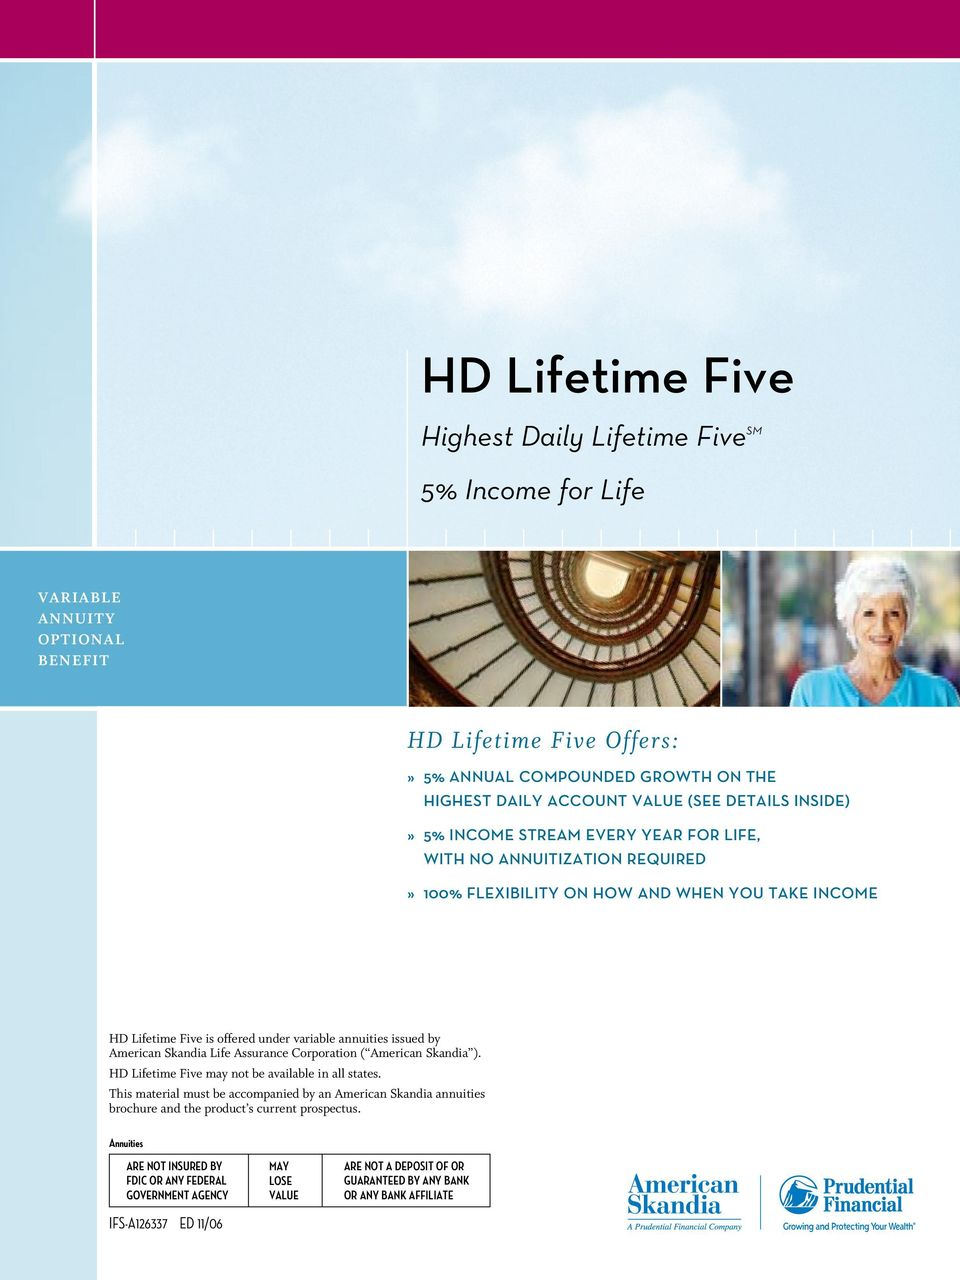 American Skandia Life Assurance Corporation ( American Skandia ). HD Lifetime Five may not be available in all states.